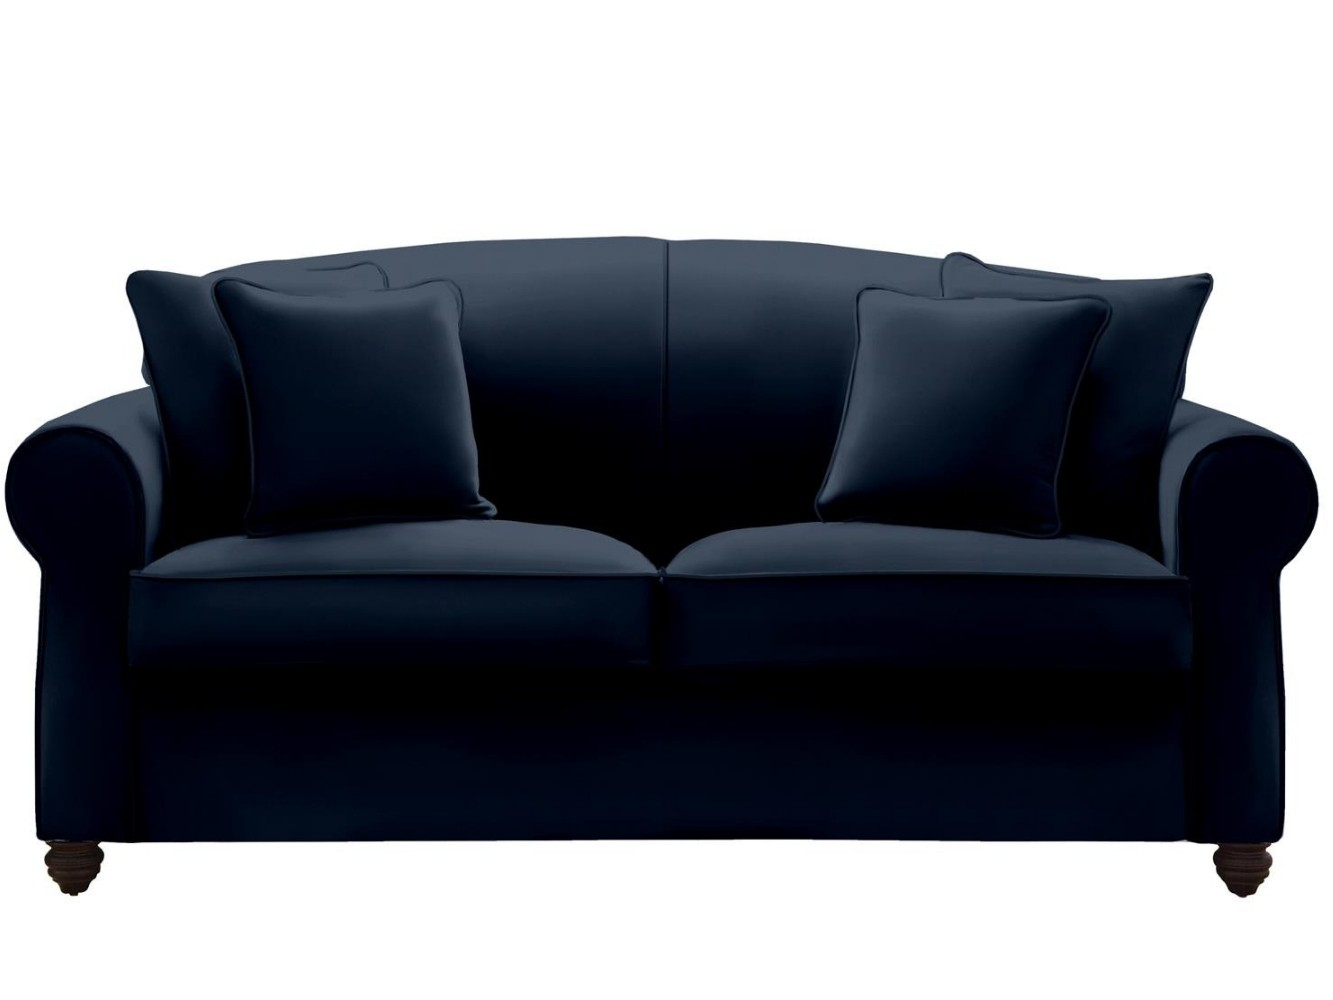 This is how I look in Matt Velvet Sapphire with siliconized hollow fibre seat cushions